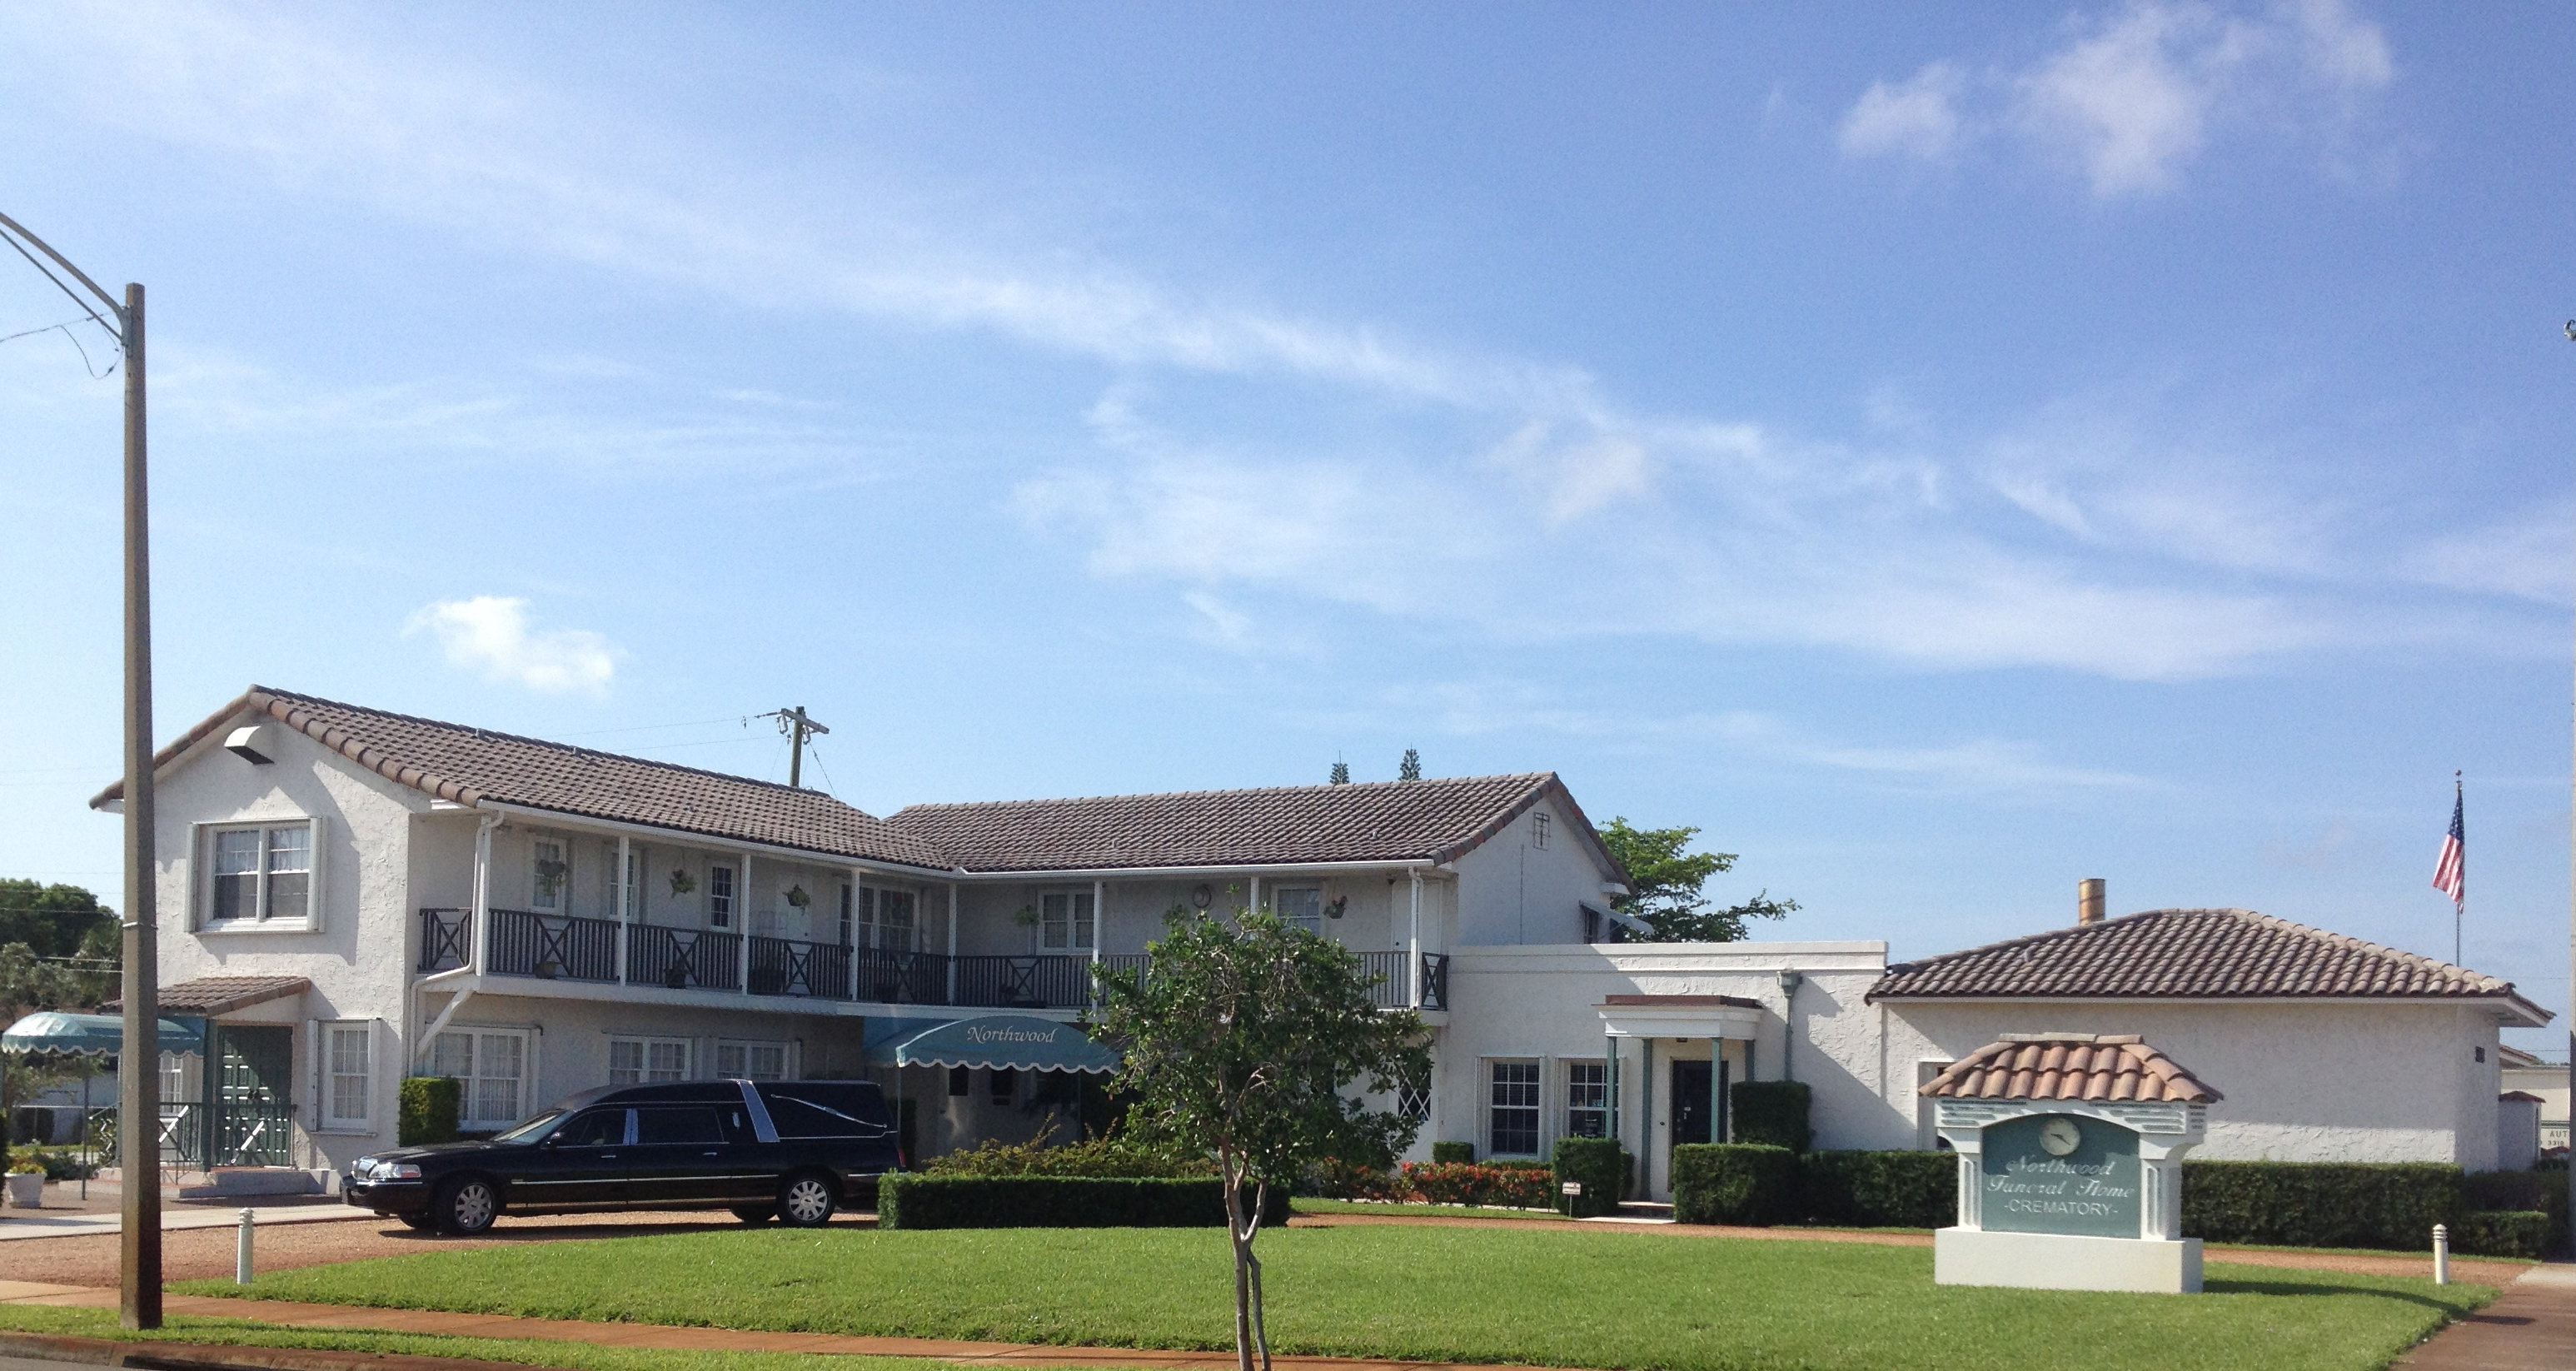 Northwood Funeral Home West Palm Beach Florida